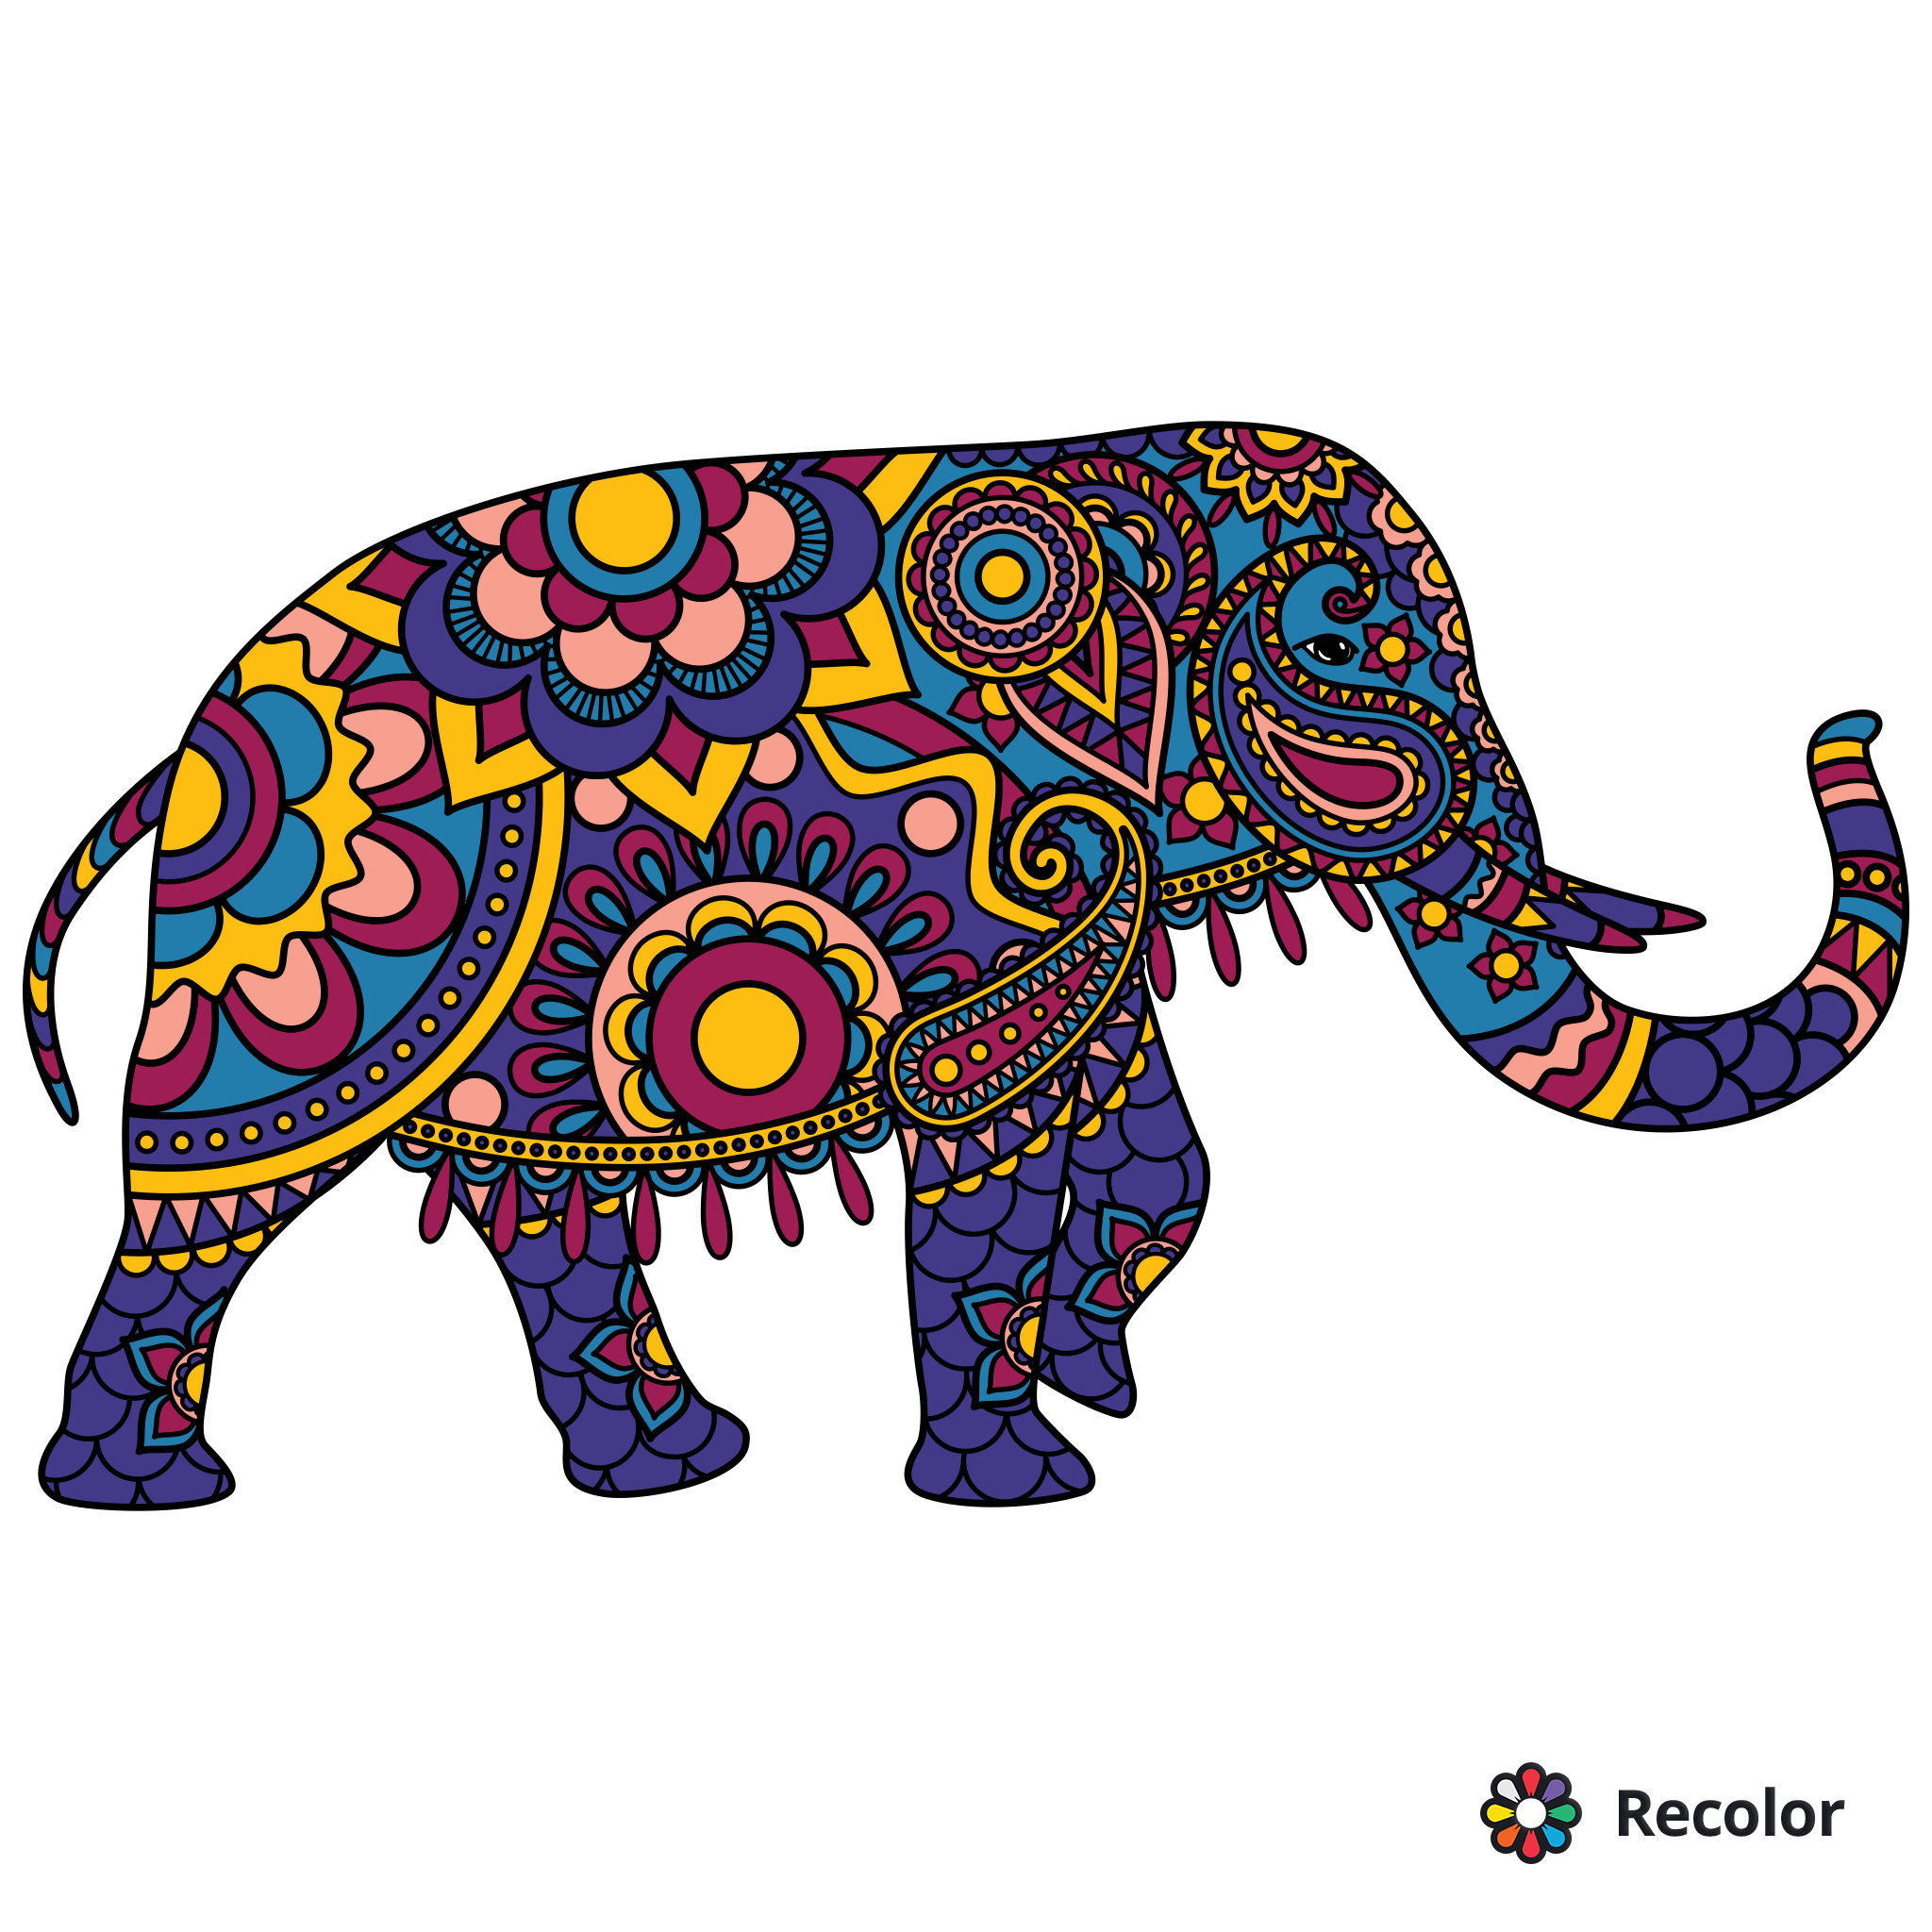 Pin On My Recolor Search more hd transparent indian elephant image on kindpng. pin on my recolor